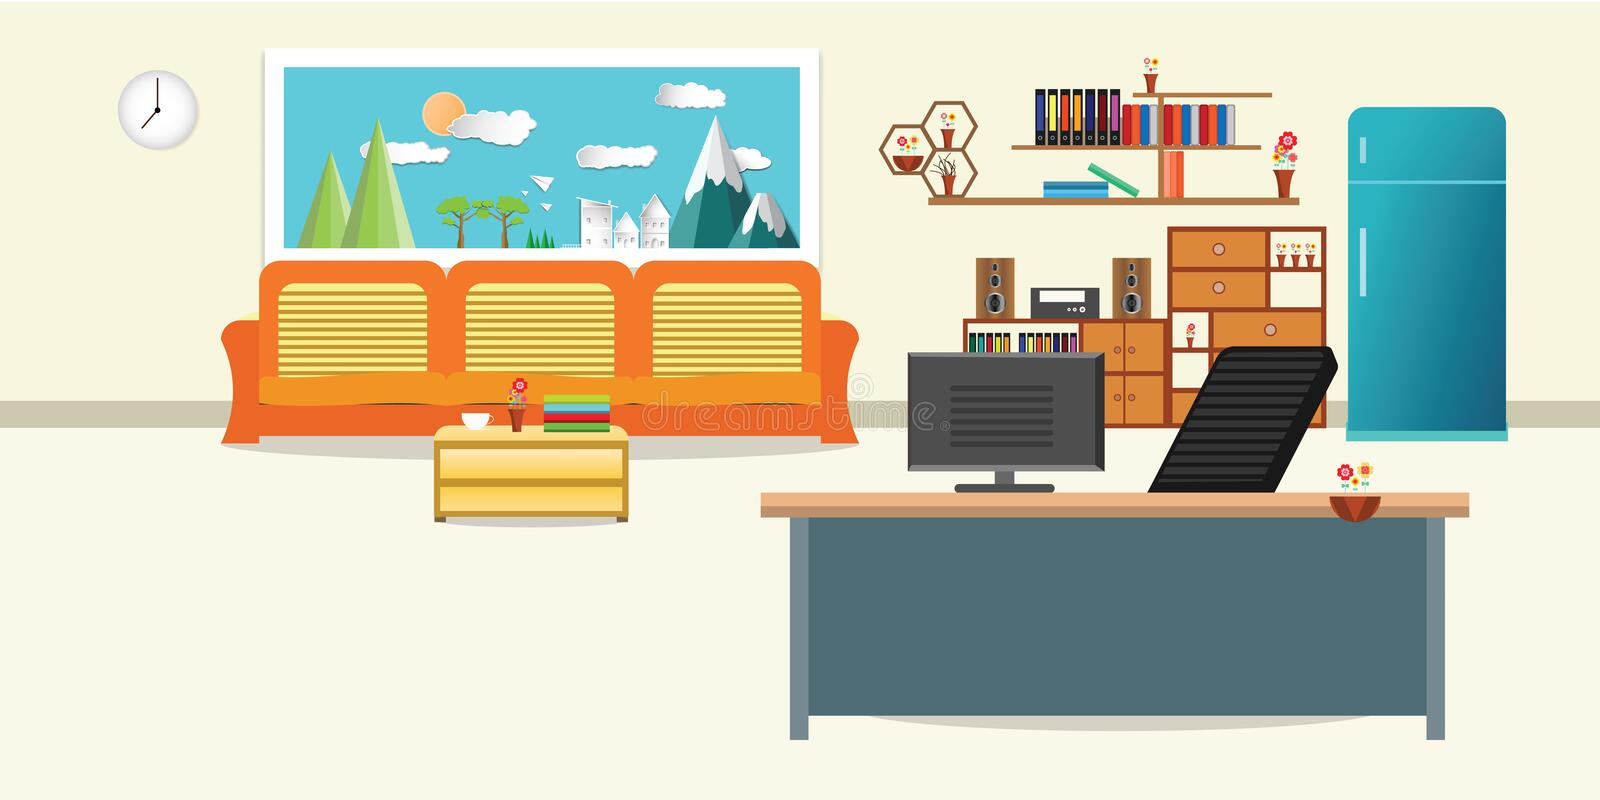 Living room and office interior flat design relax with orange sofa and Computer table - chair bookshelf refrigerator window sky cl stock illustration